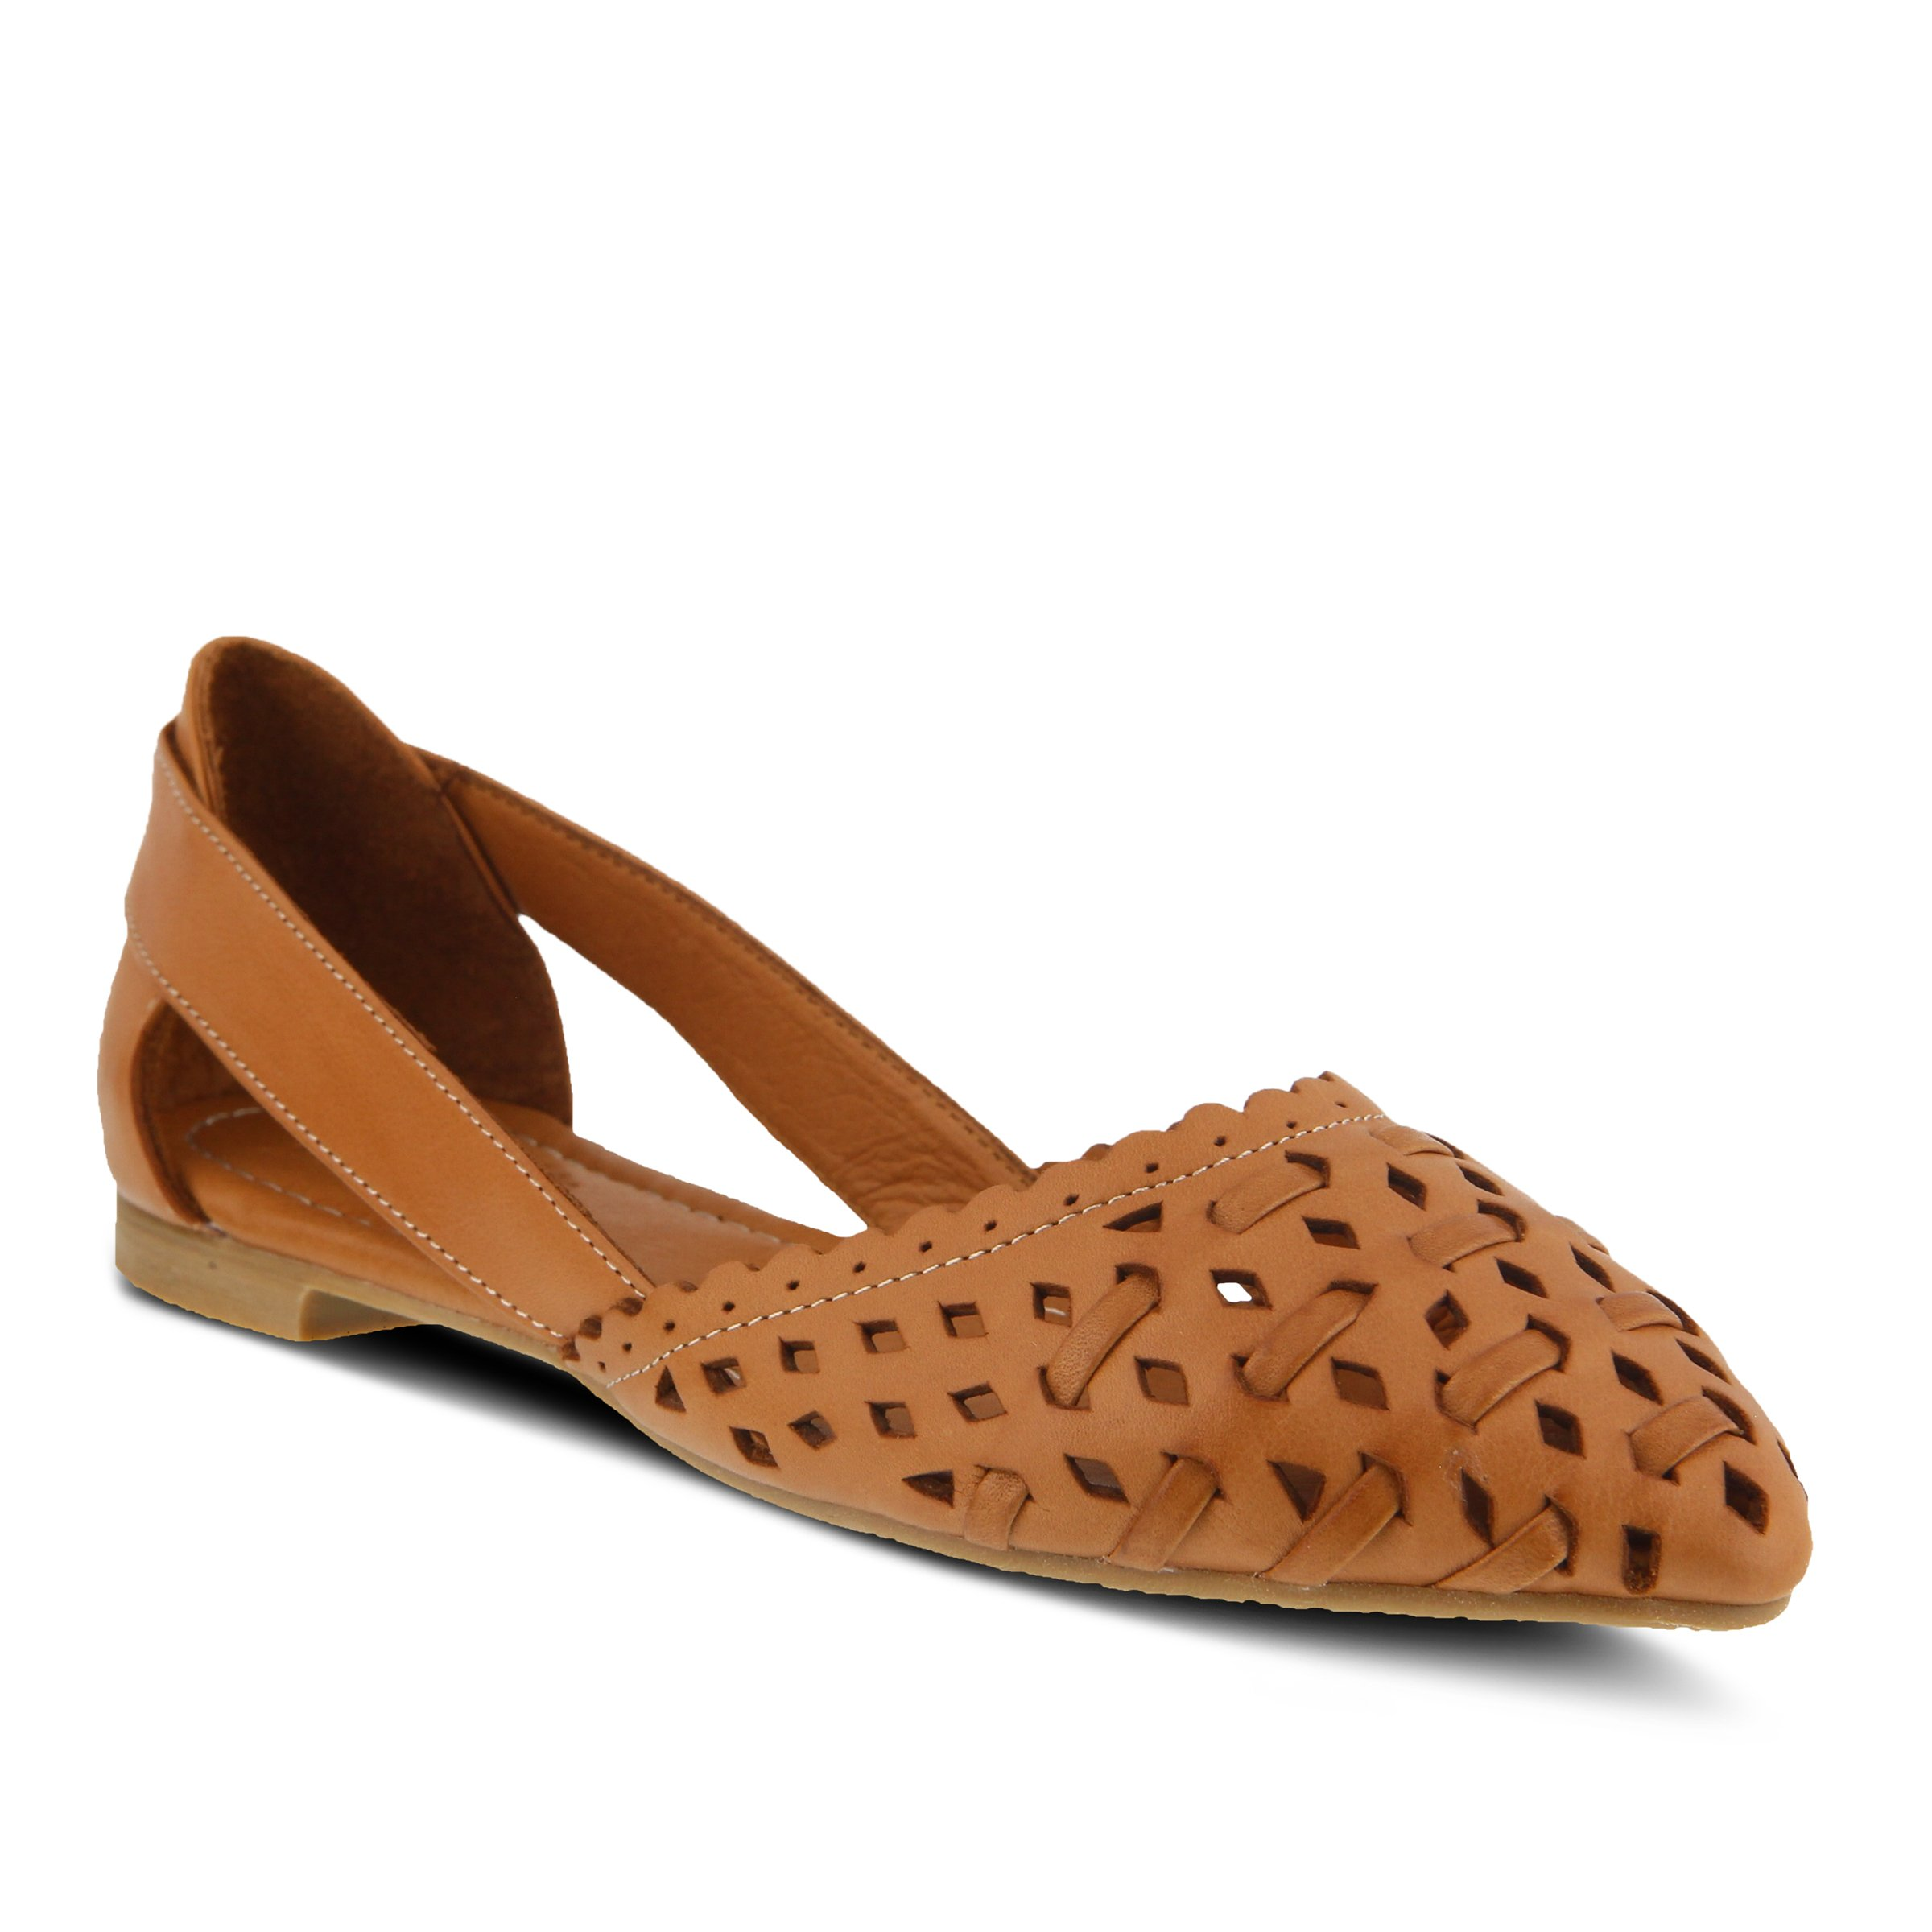 Spring Step Women's Style Delorse Camel EURO Size 39 Leather Slip-On Shoe